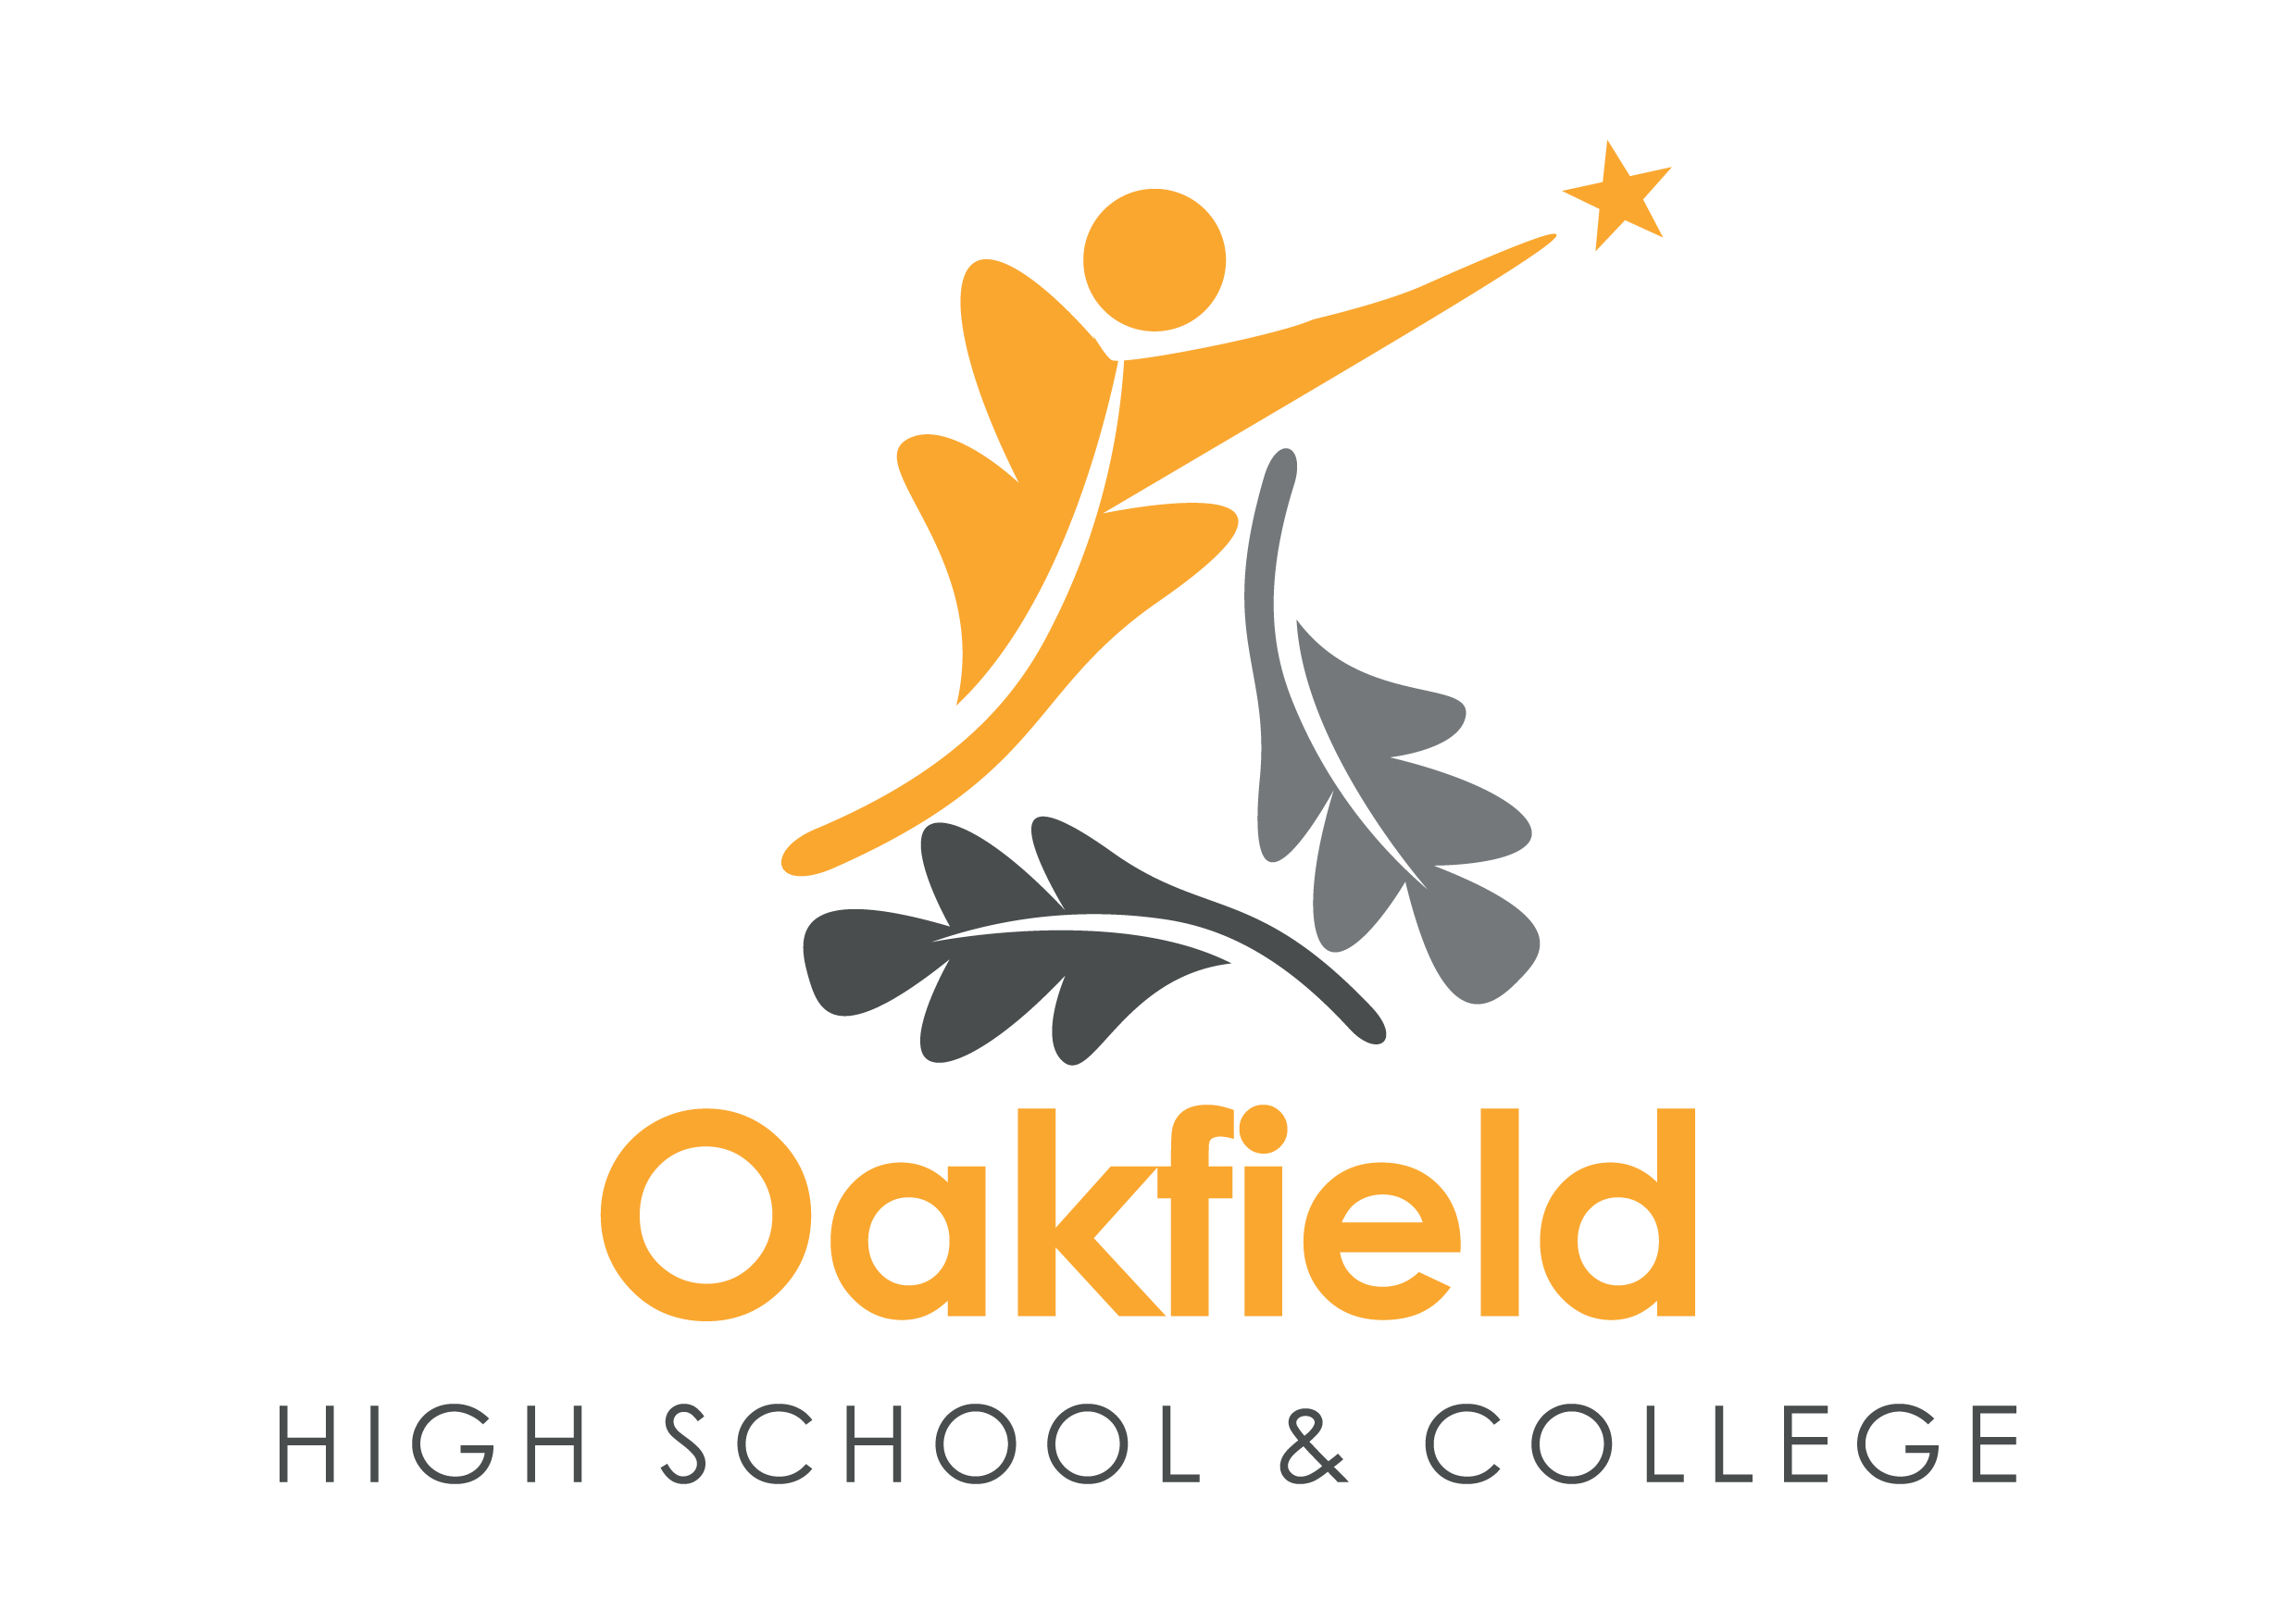 Oakfield High School and College